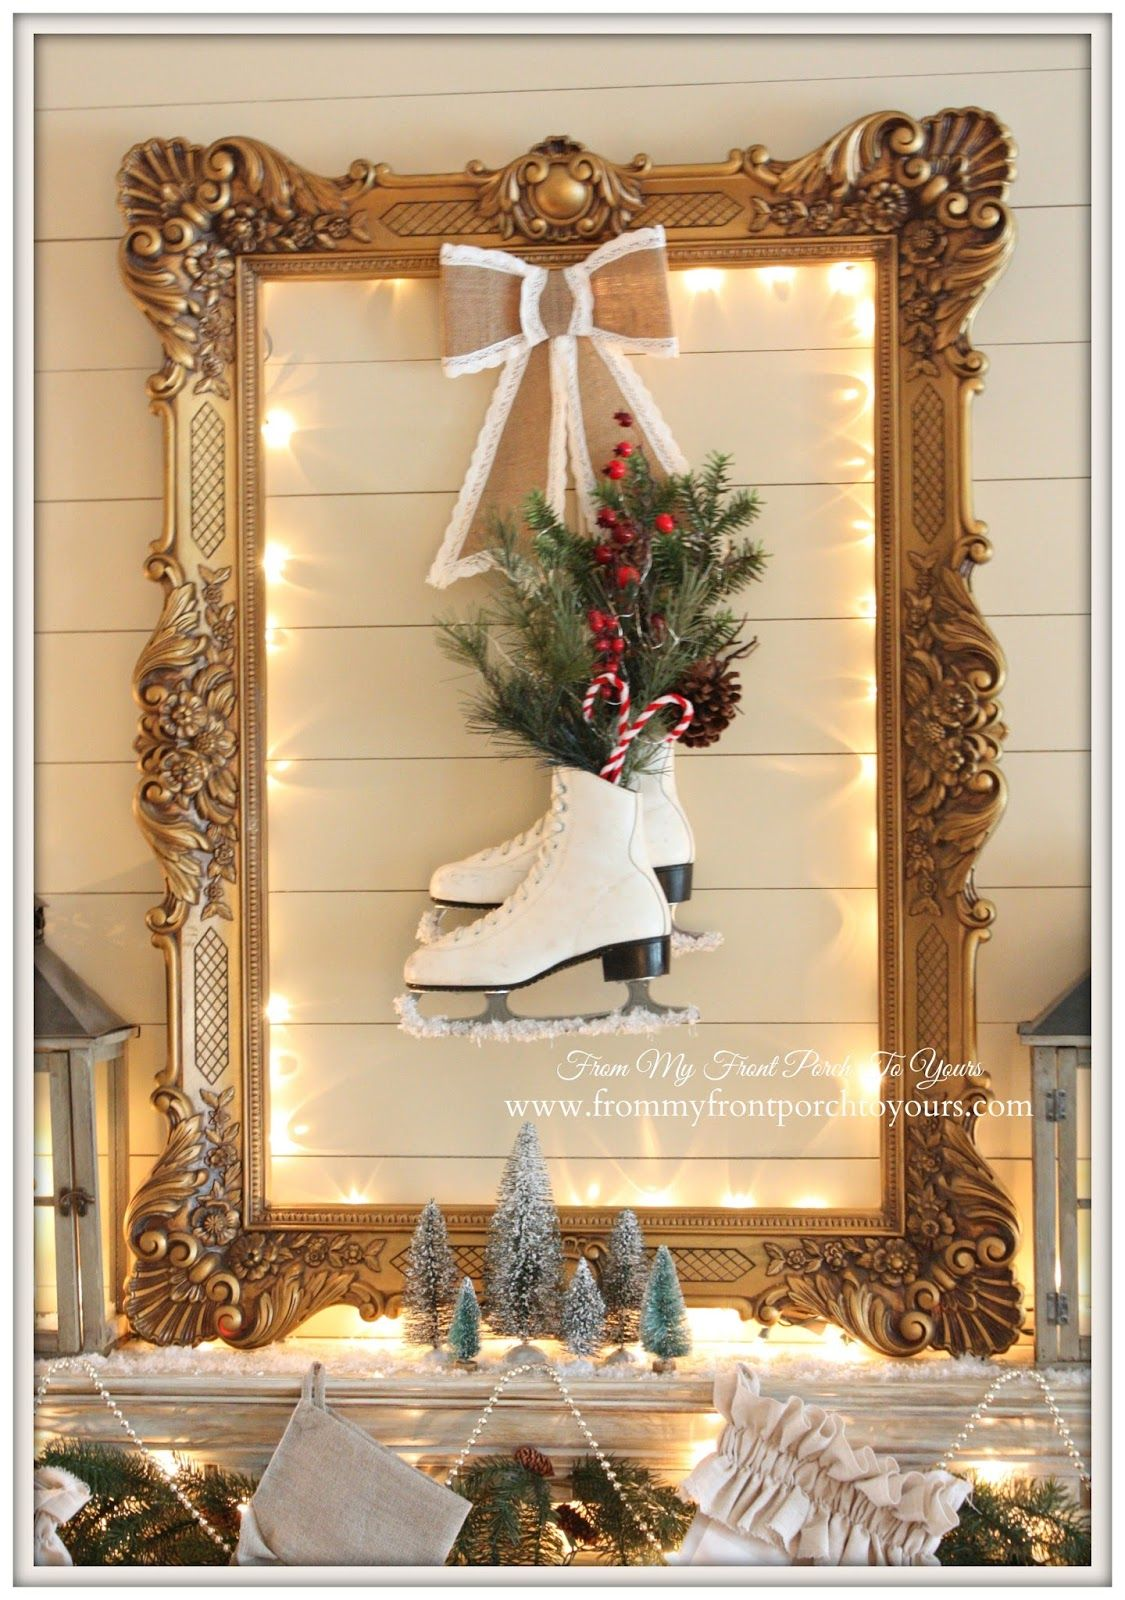 Ice Skates-Christmas Mantel 2014- From My Front Porch To Yours